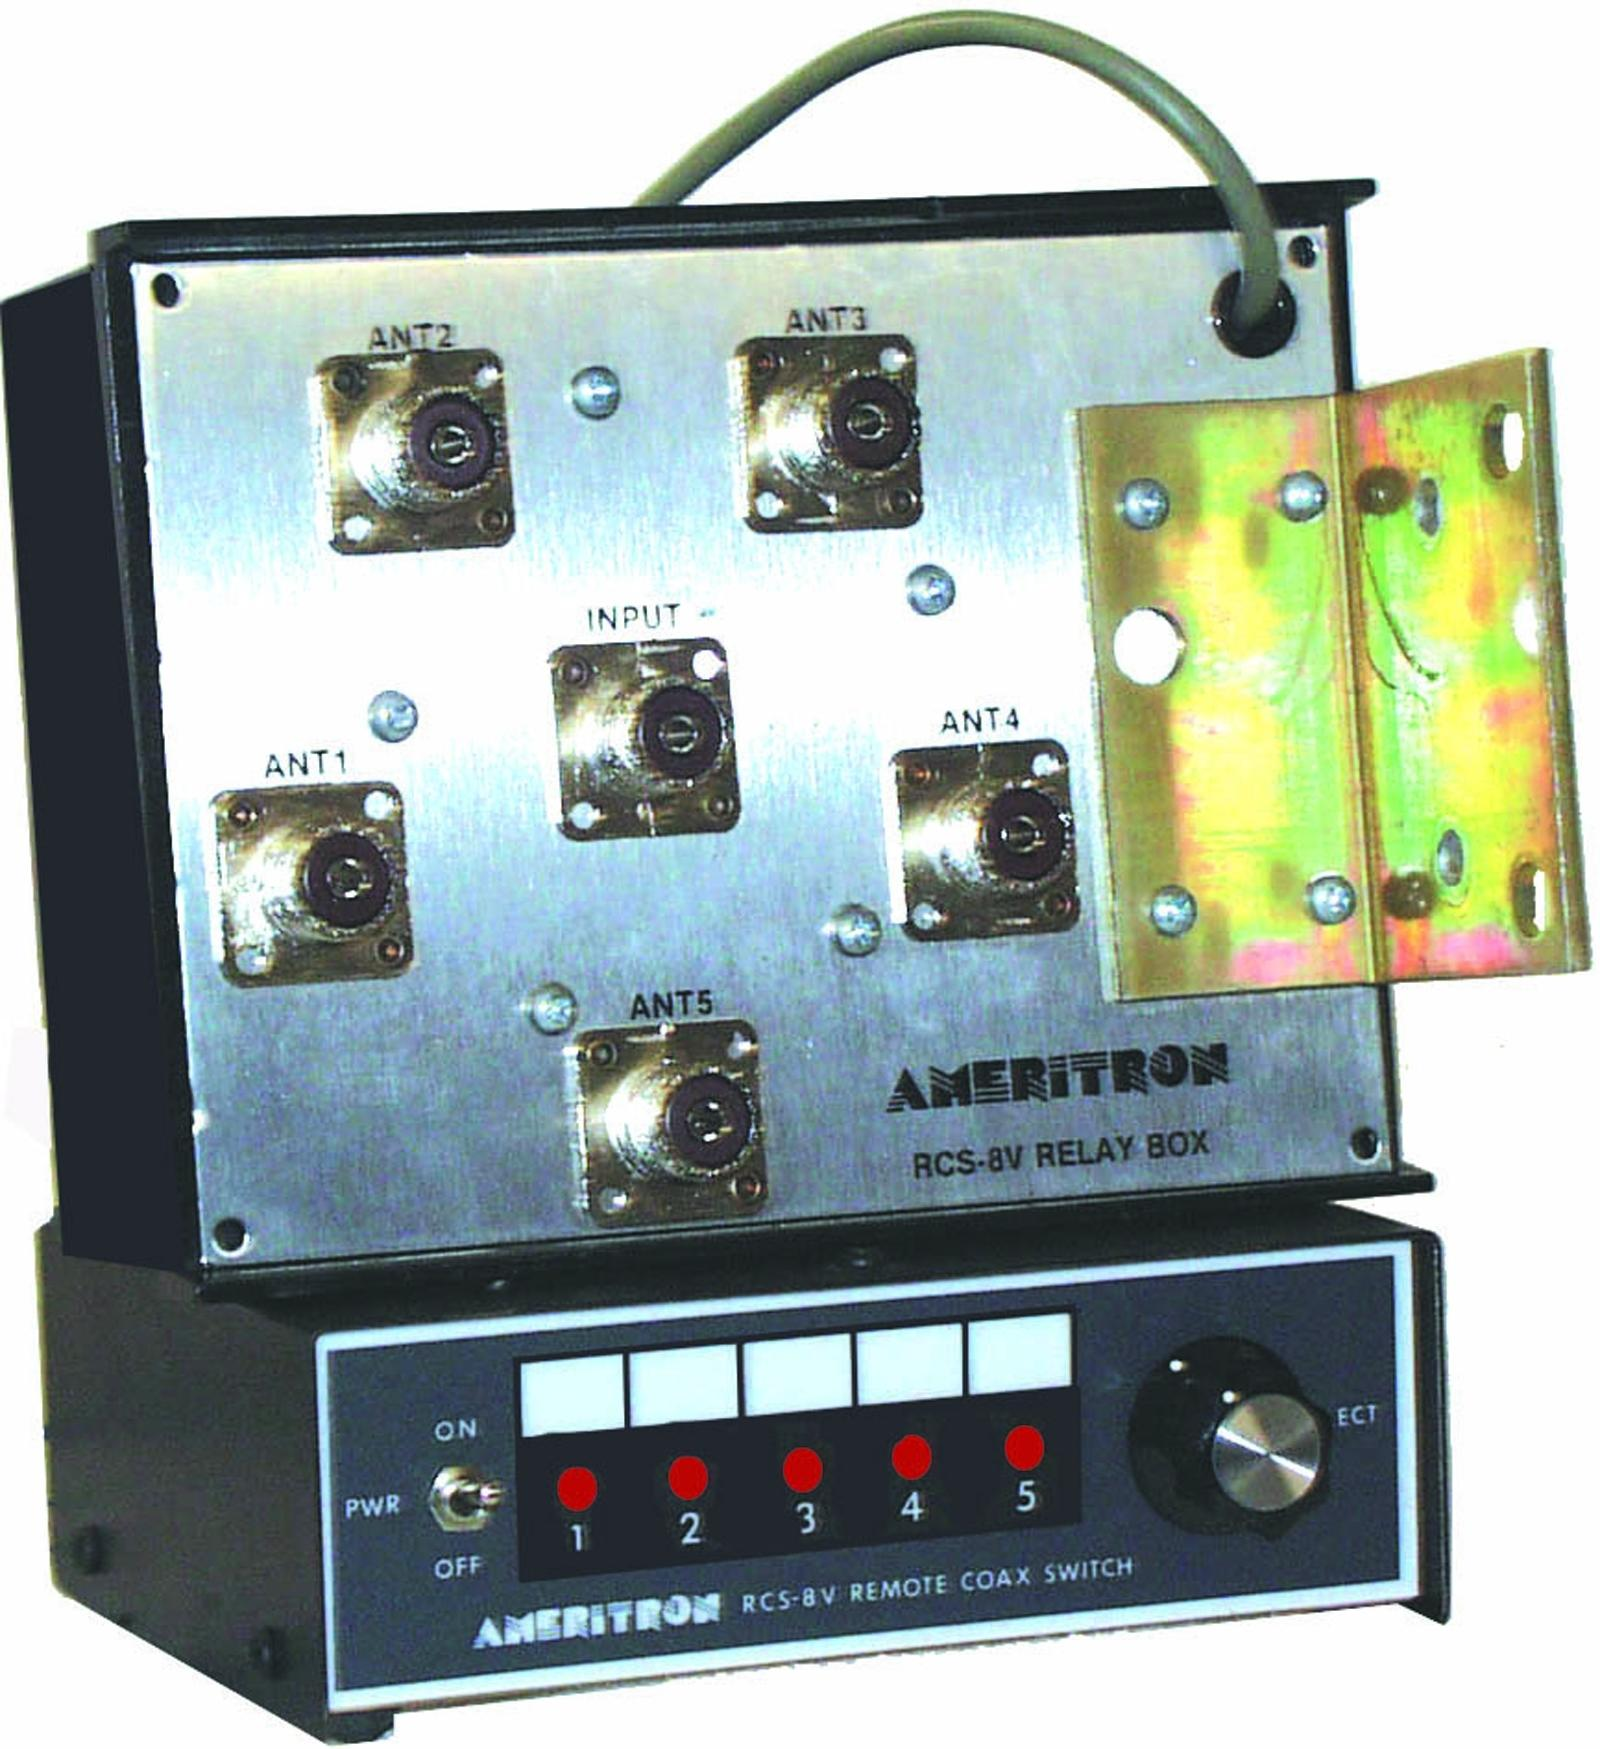 Ameritron 5-way Remote Coax Switch (N-Type) RCS-8VNLX